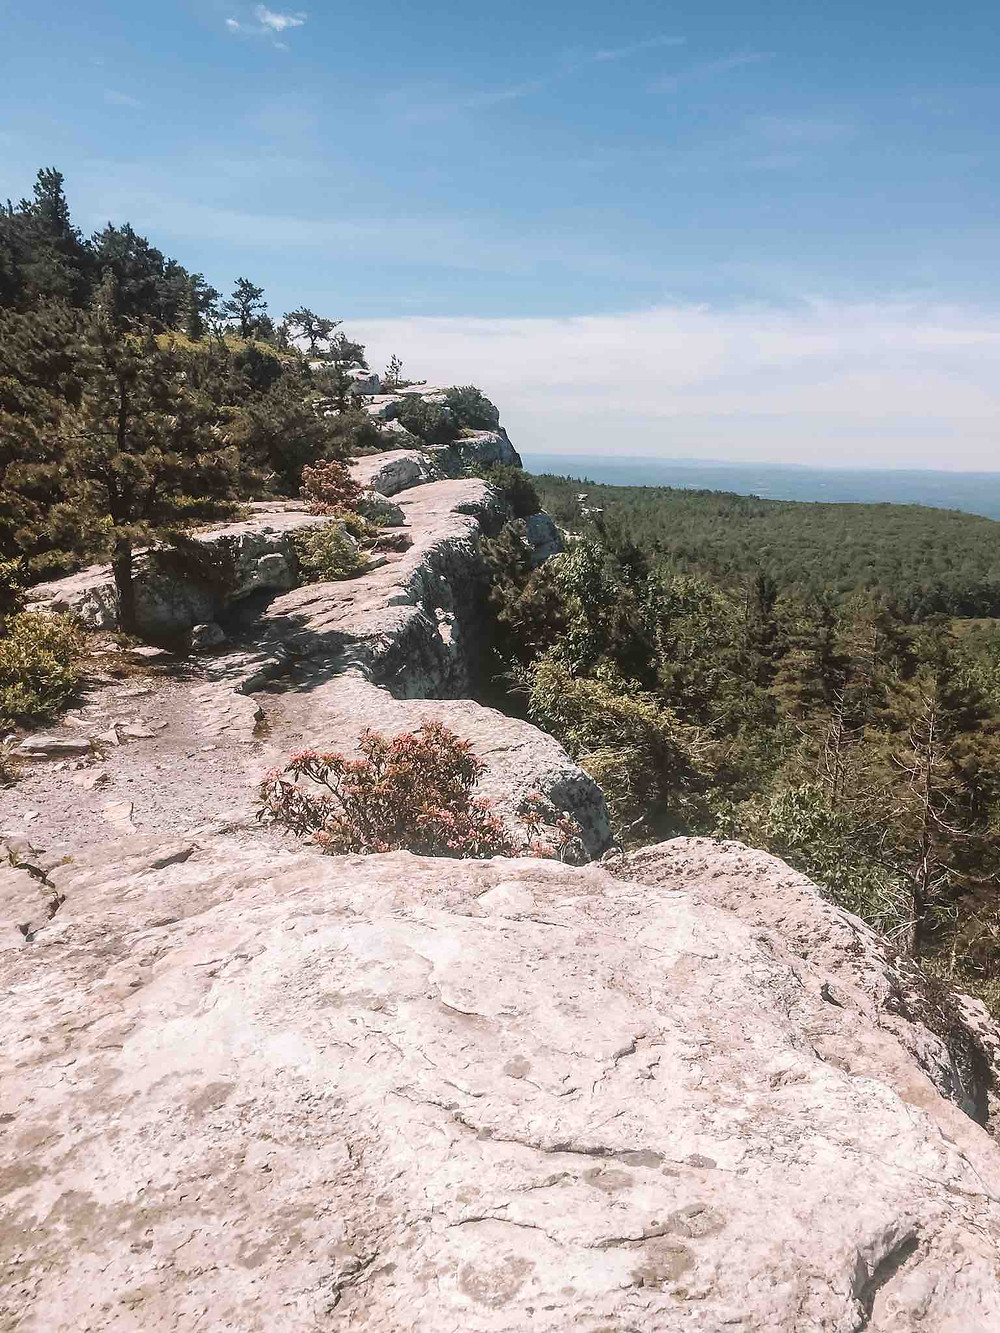 Camp at Shawngunk to climb in the gunks. Minnewaska is a state park to explore with many hiking trails. I suggest doing Gertrude noise!